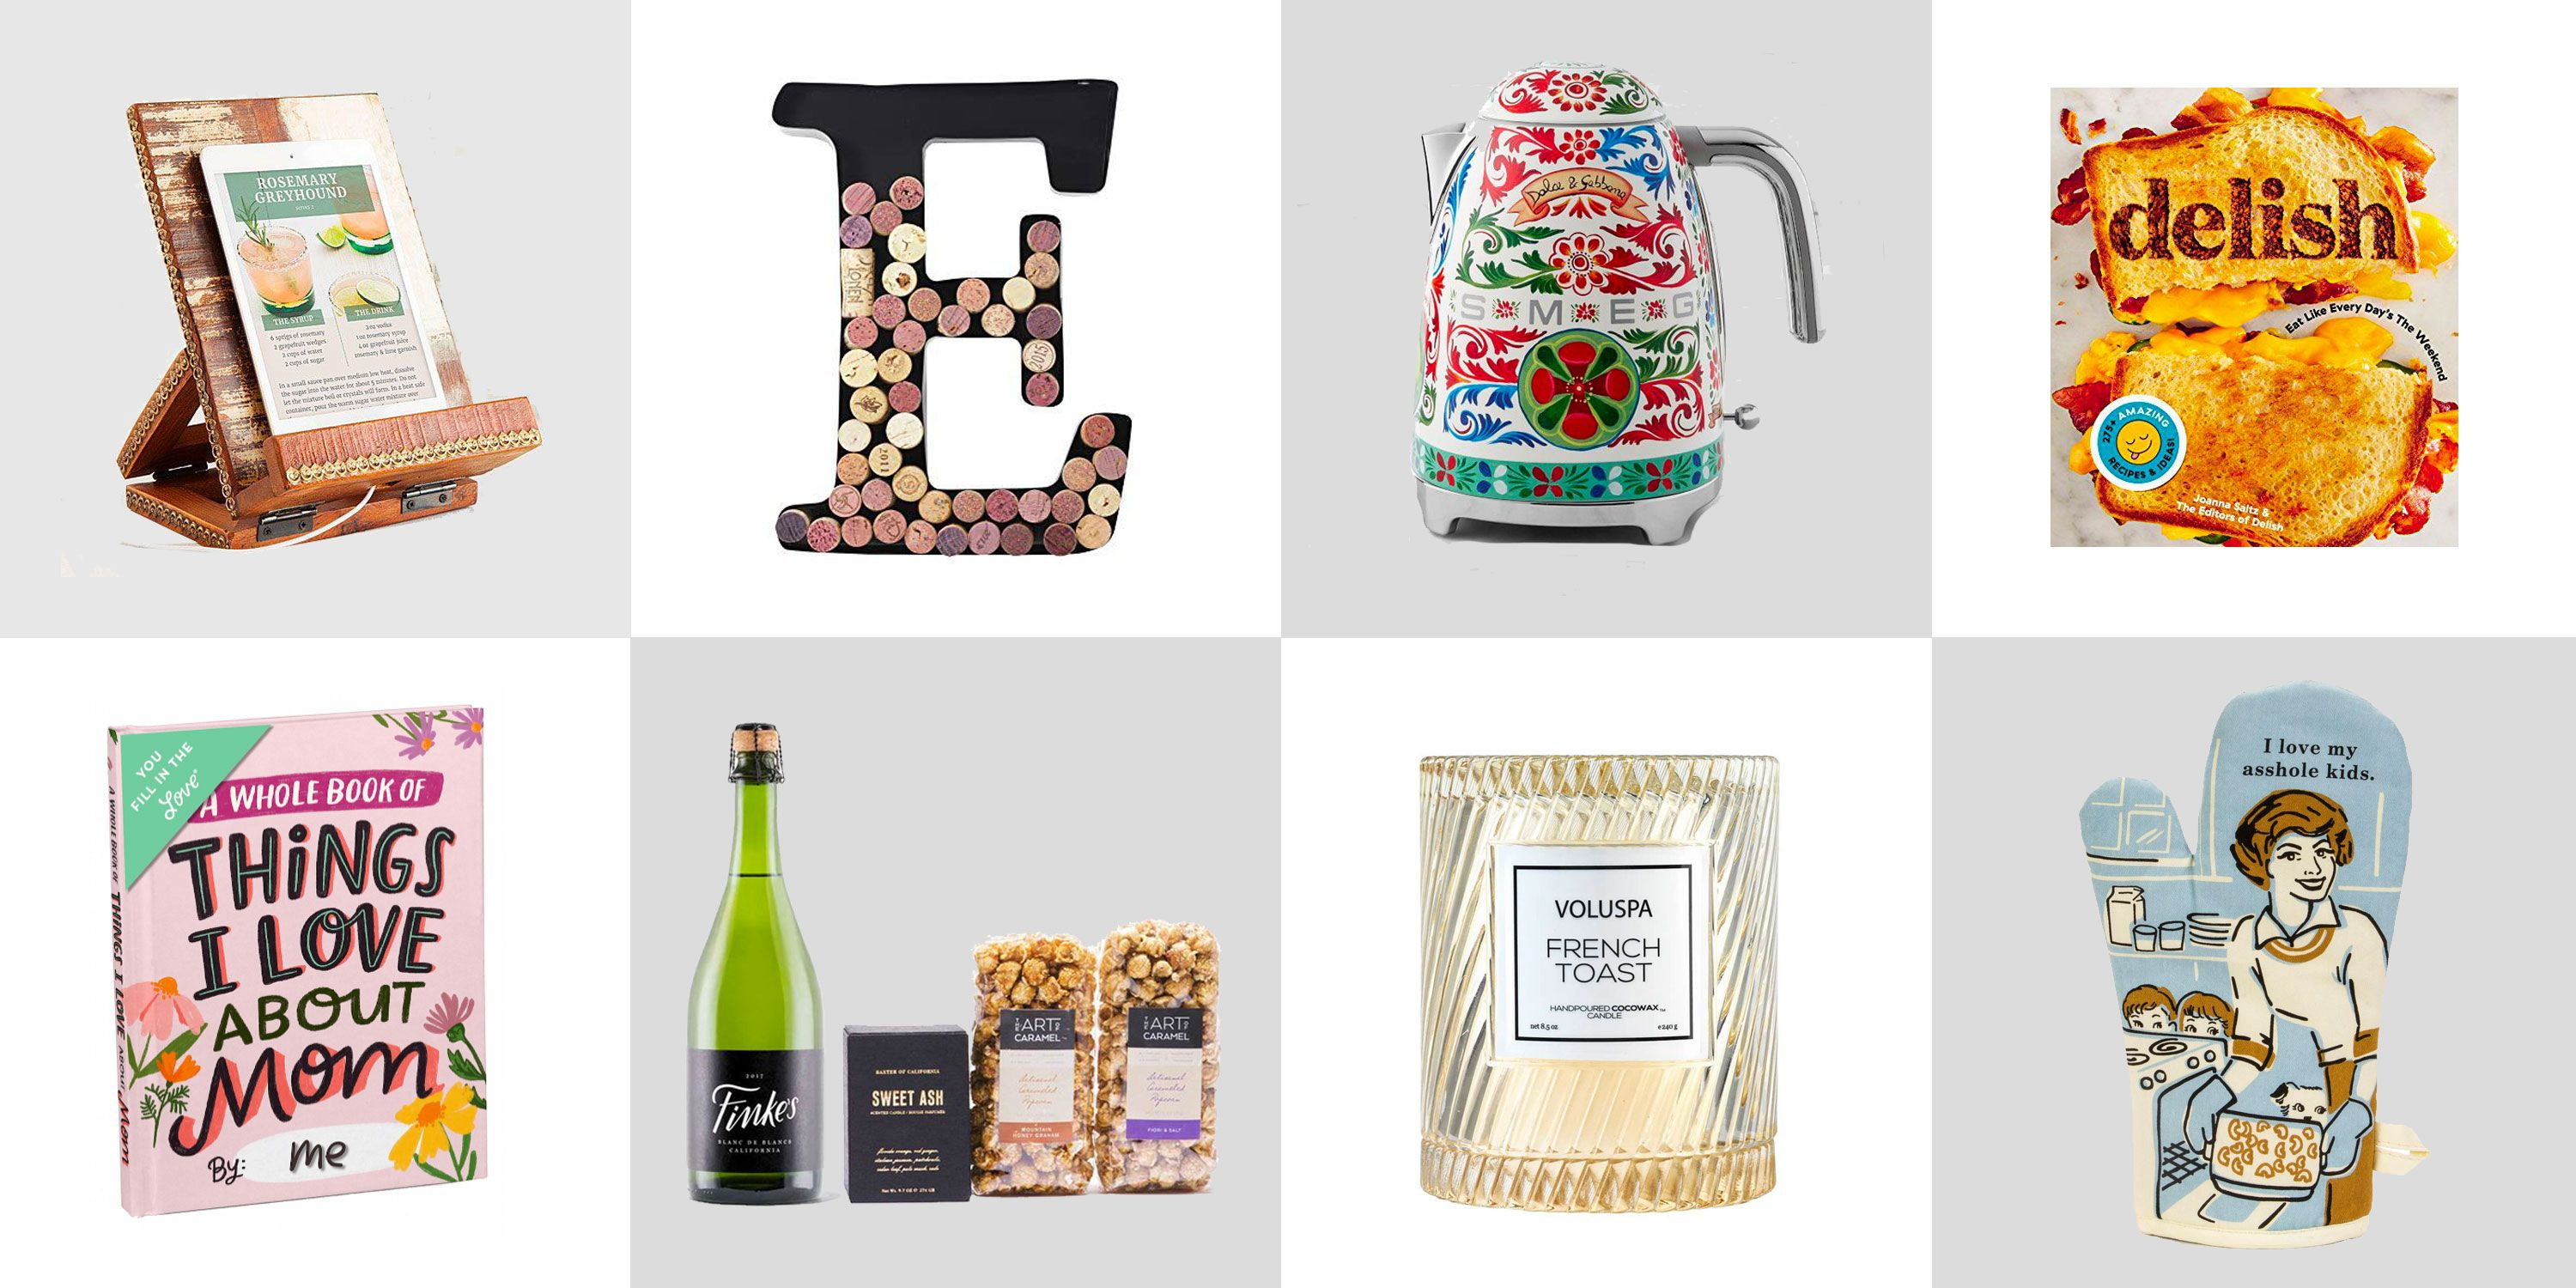 image  sc 1 st  Delish.com & 20+ Best Mothers Day Food Gifts - Unique Mothers Day Gift Ideas